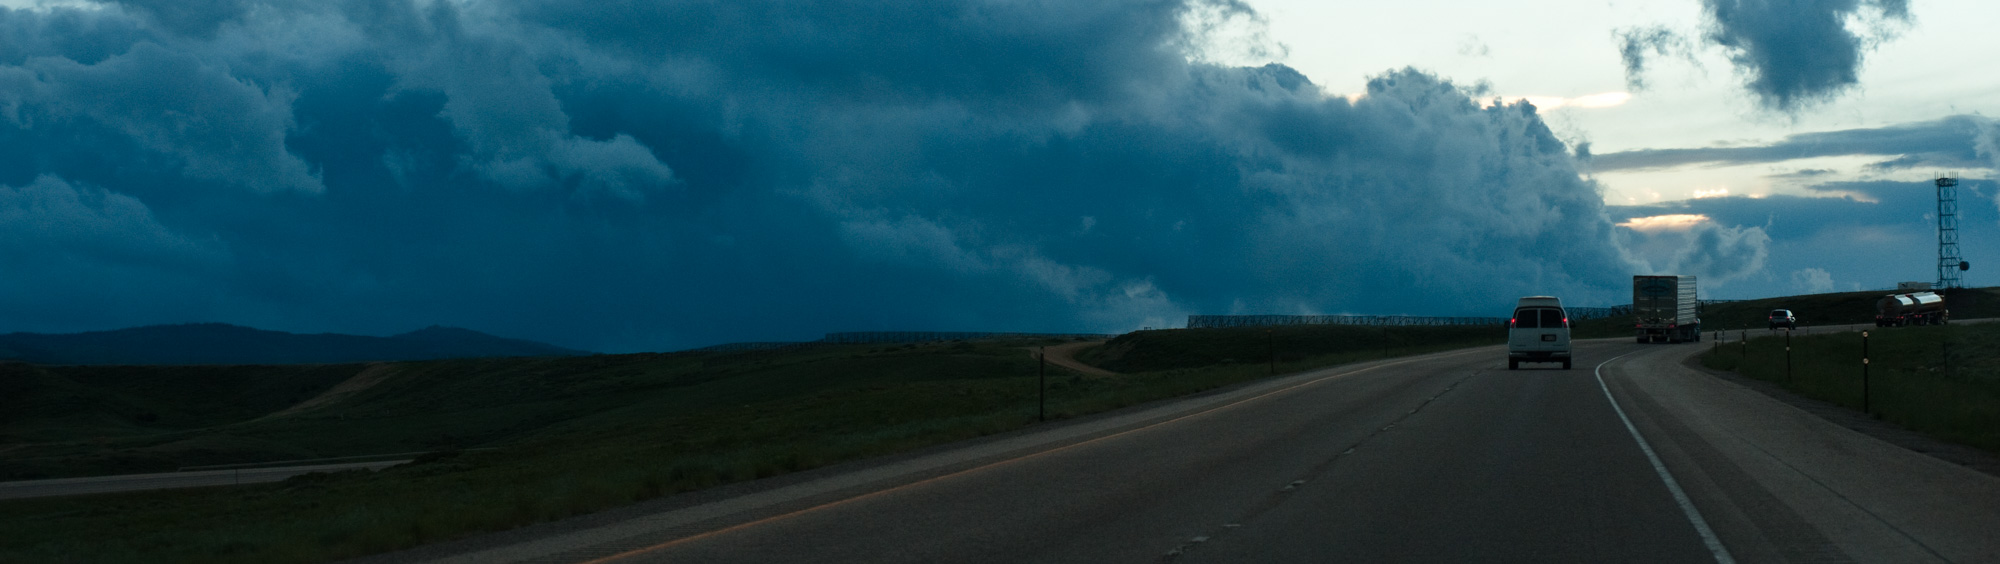 A long, wide panoramic picture of vehicles on the westbound lanes of US Interstate 80 in southern Wyoming with the Rocky Mountains to the far left and cold steel blue storm clouds in the top half of the frame. Snow  fences at the horizon line protect the raodway below from blowing snow. A communications tower sits at the far right of the frame.